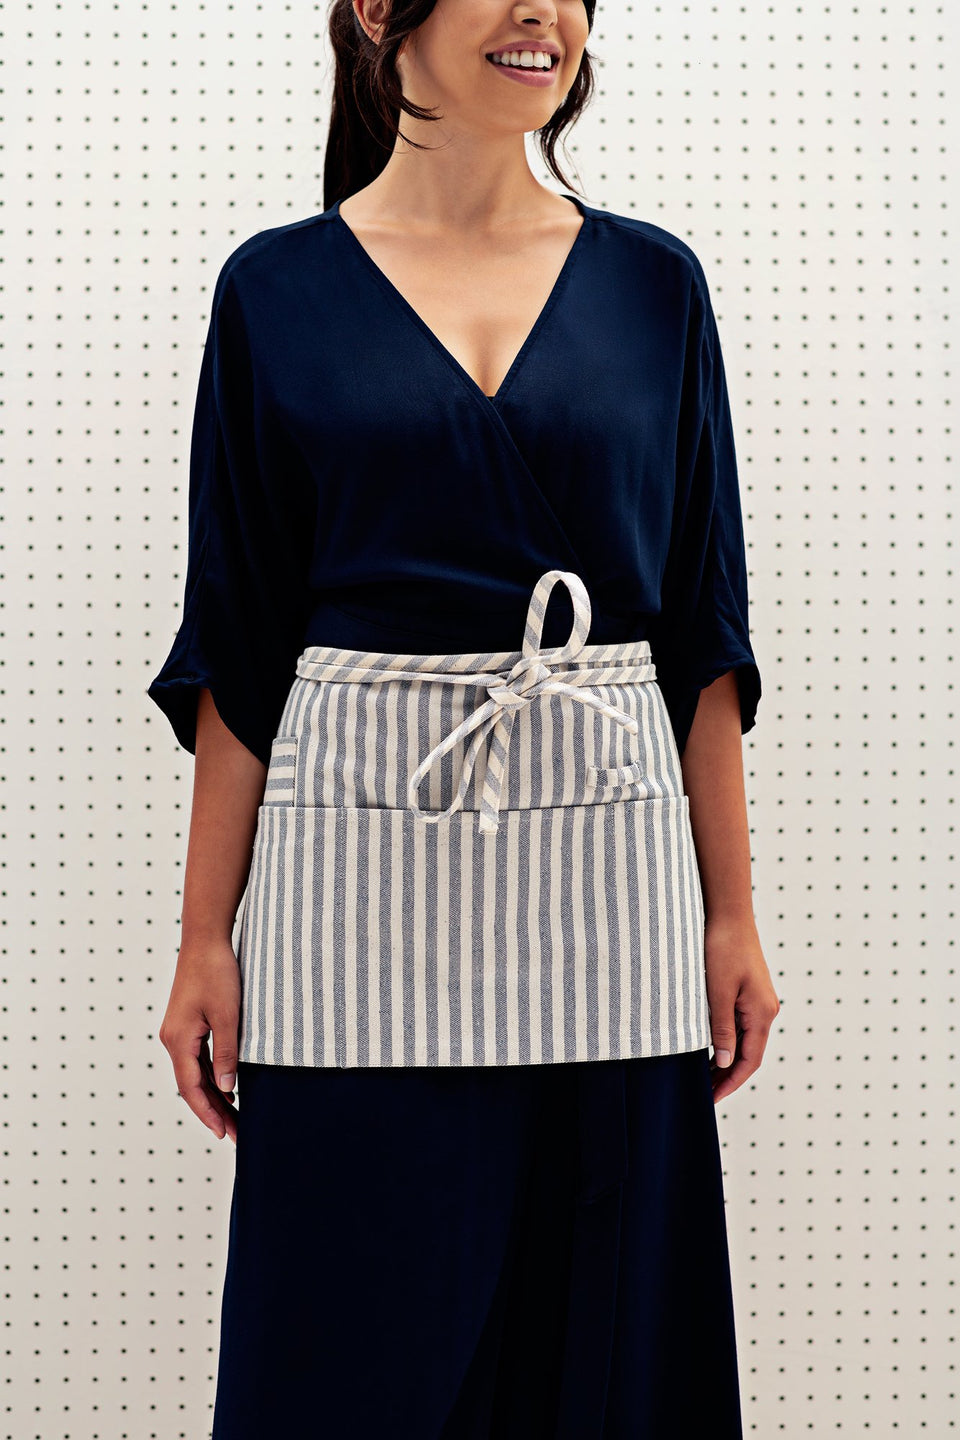 Waist Apron / Striped